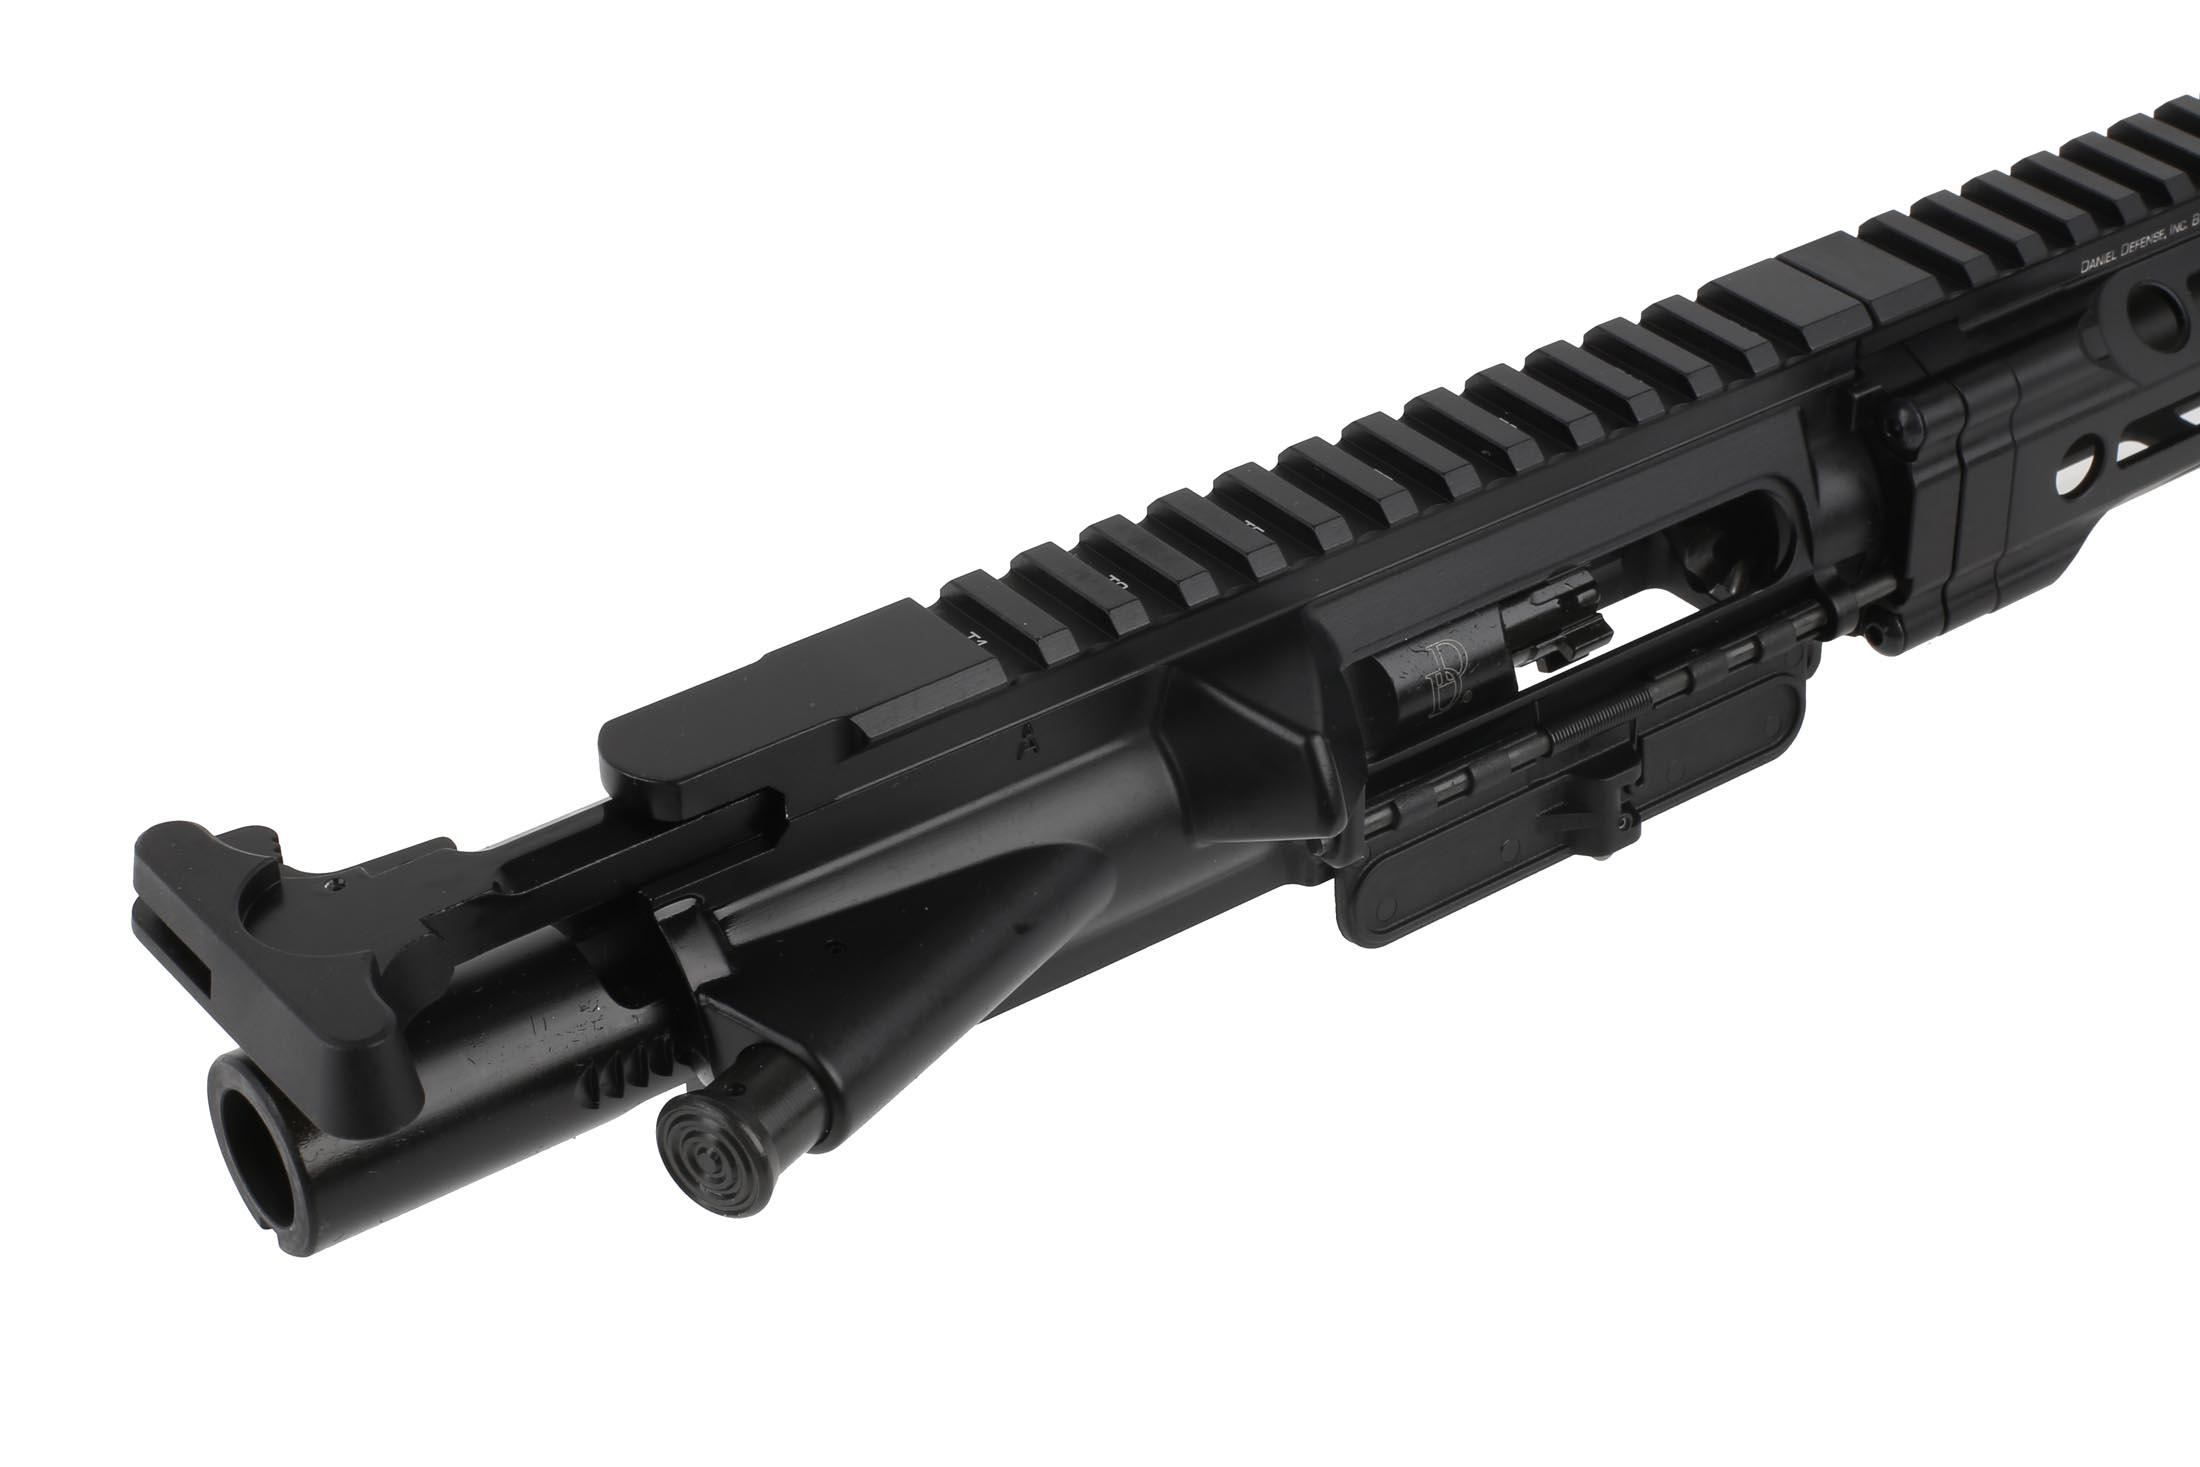 The DDM4 v7 Daniel defense ar15 complete upper receiver has a standard charging handle and M16 bcg